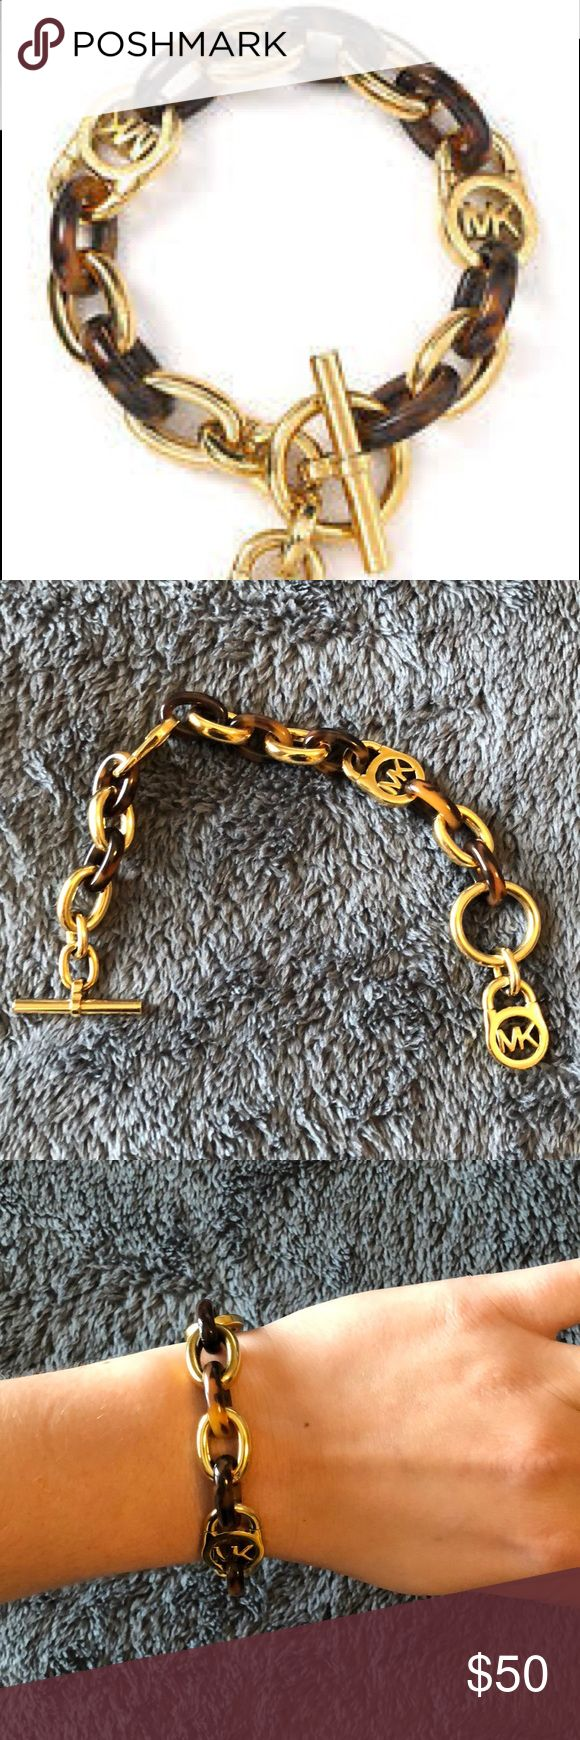 Micheal Kors gold and tortoise chain link bracelet Never worn. Excellent condition. Michael Kors Jewelry Bracelets